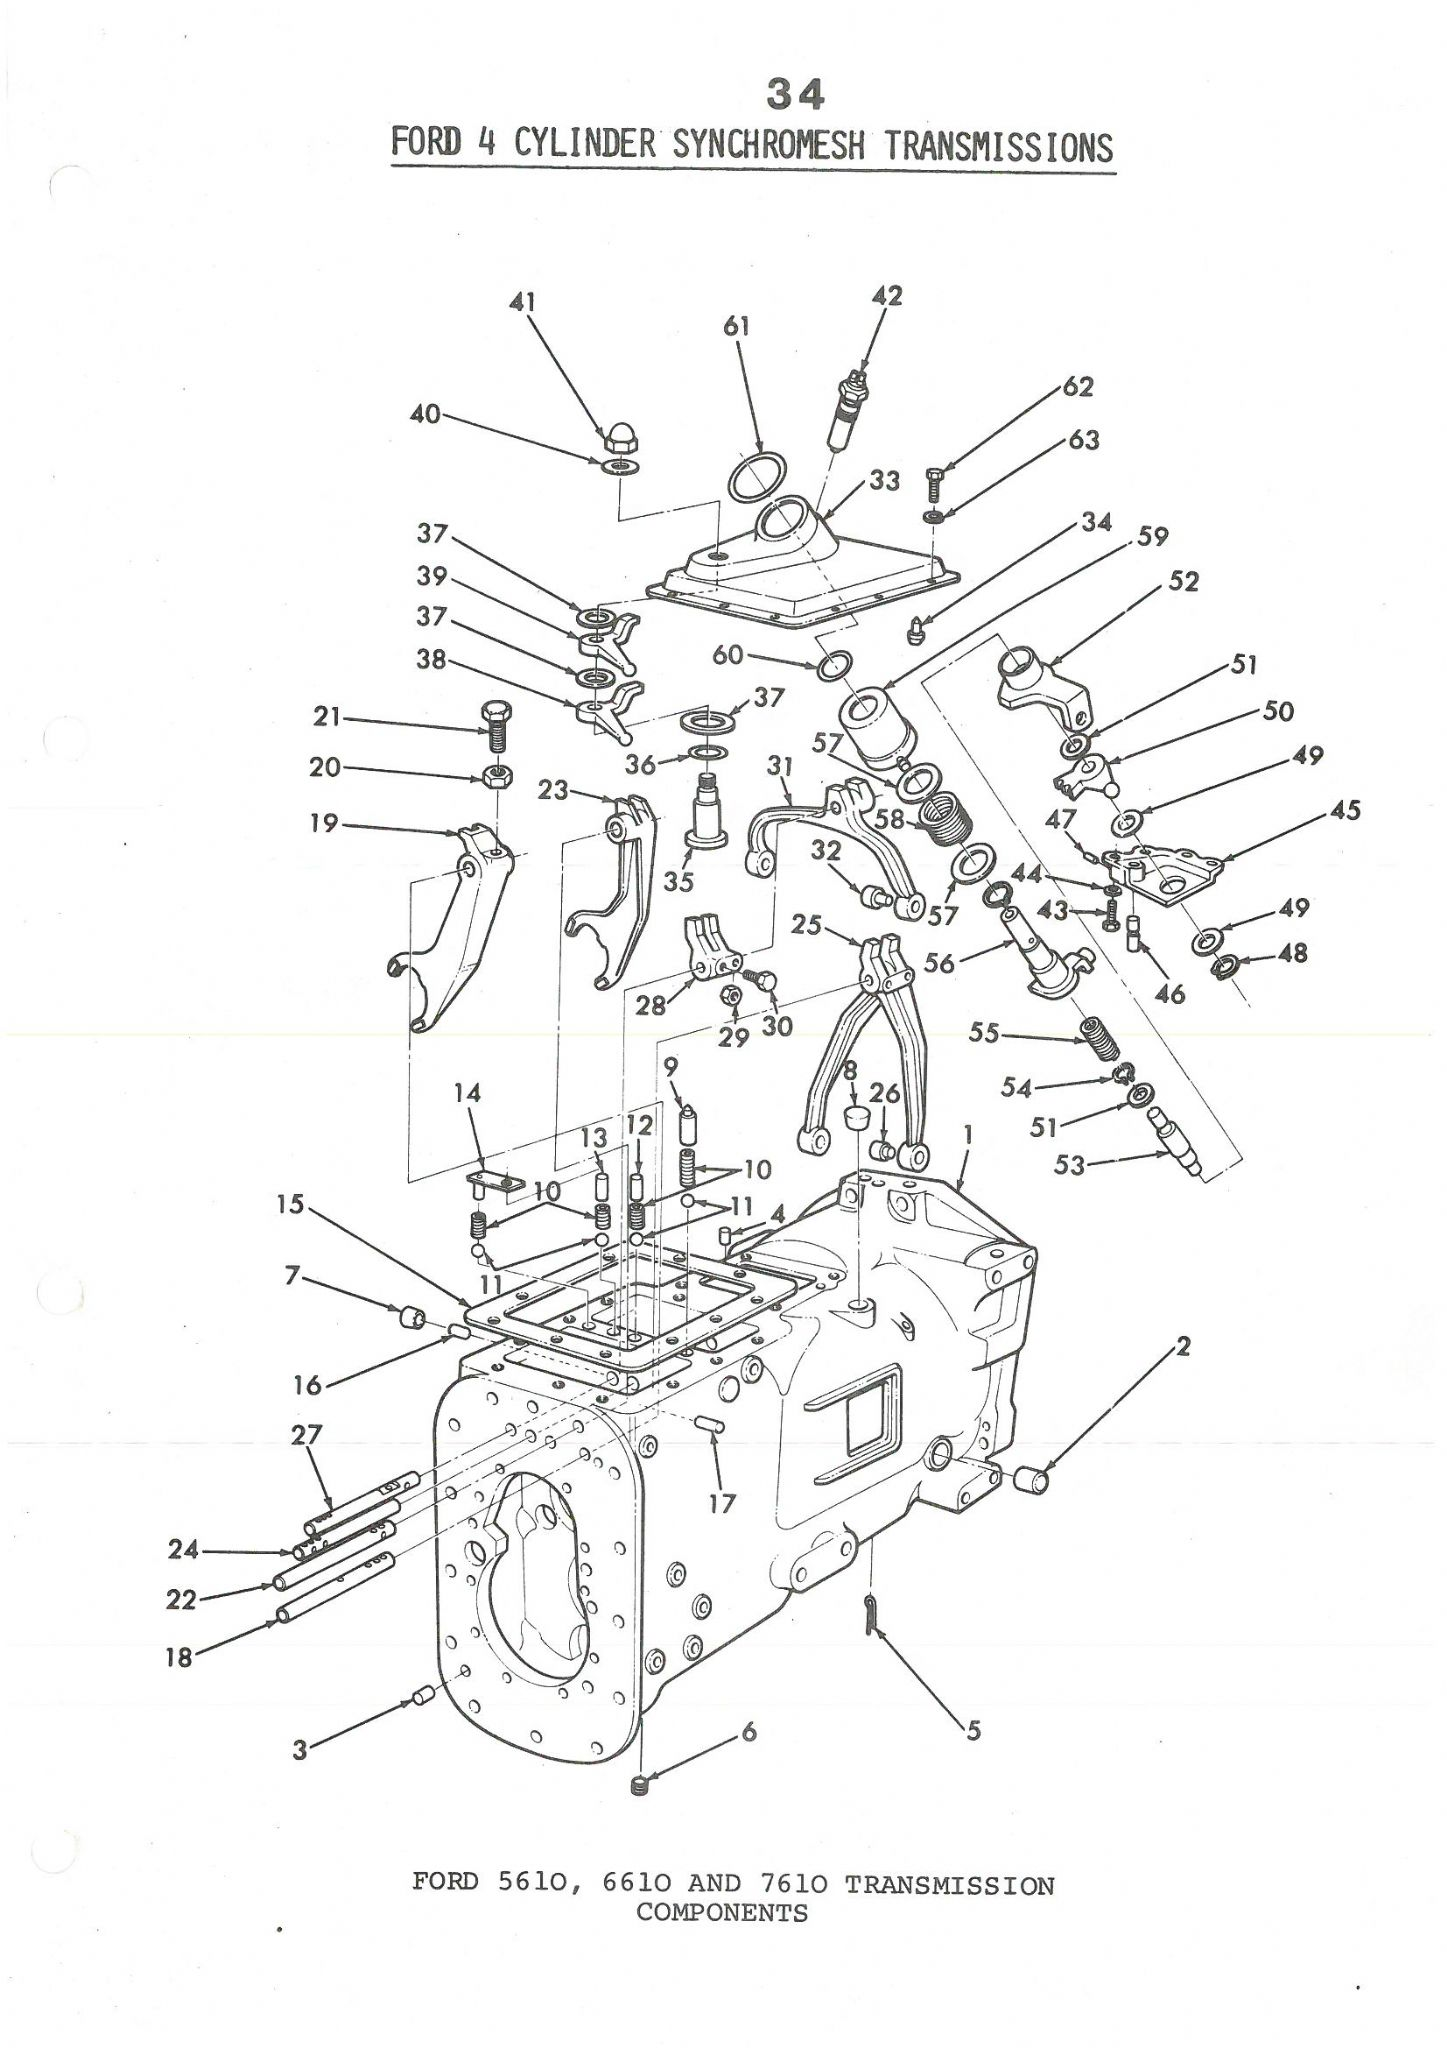 Charming ford 7710 wiring diagram contemporary best image